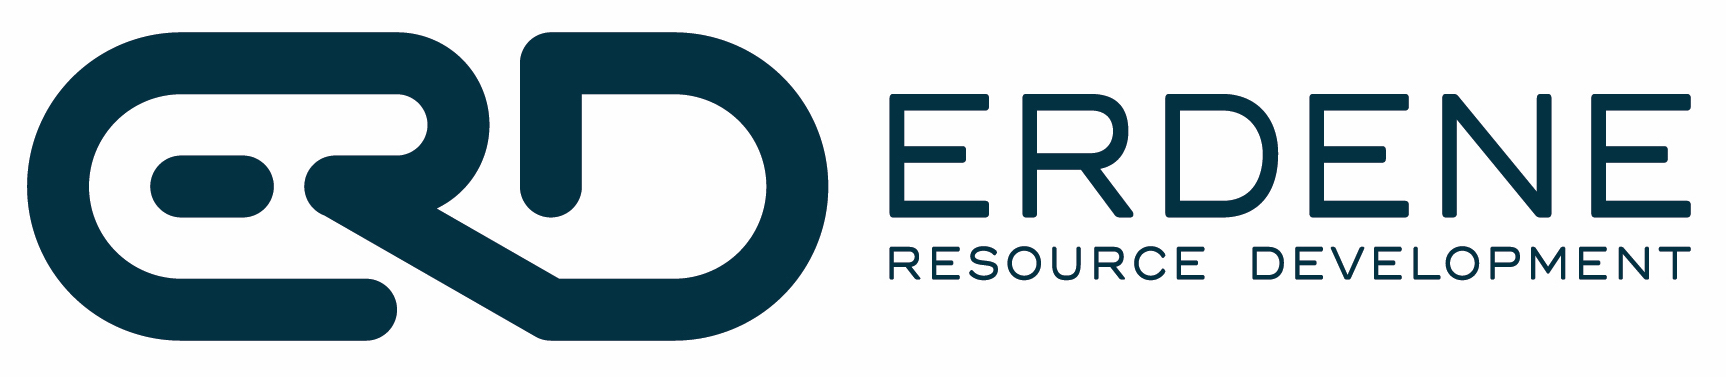 ERD_Full_logo_CMYK_Dark-01 cropped.jpg